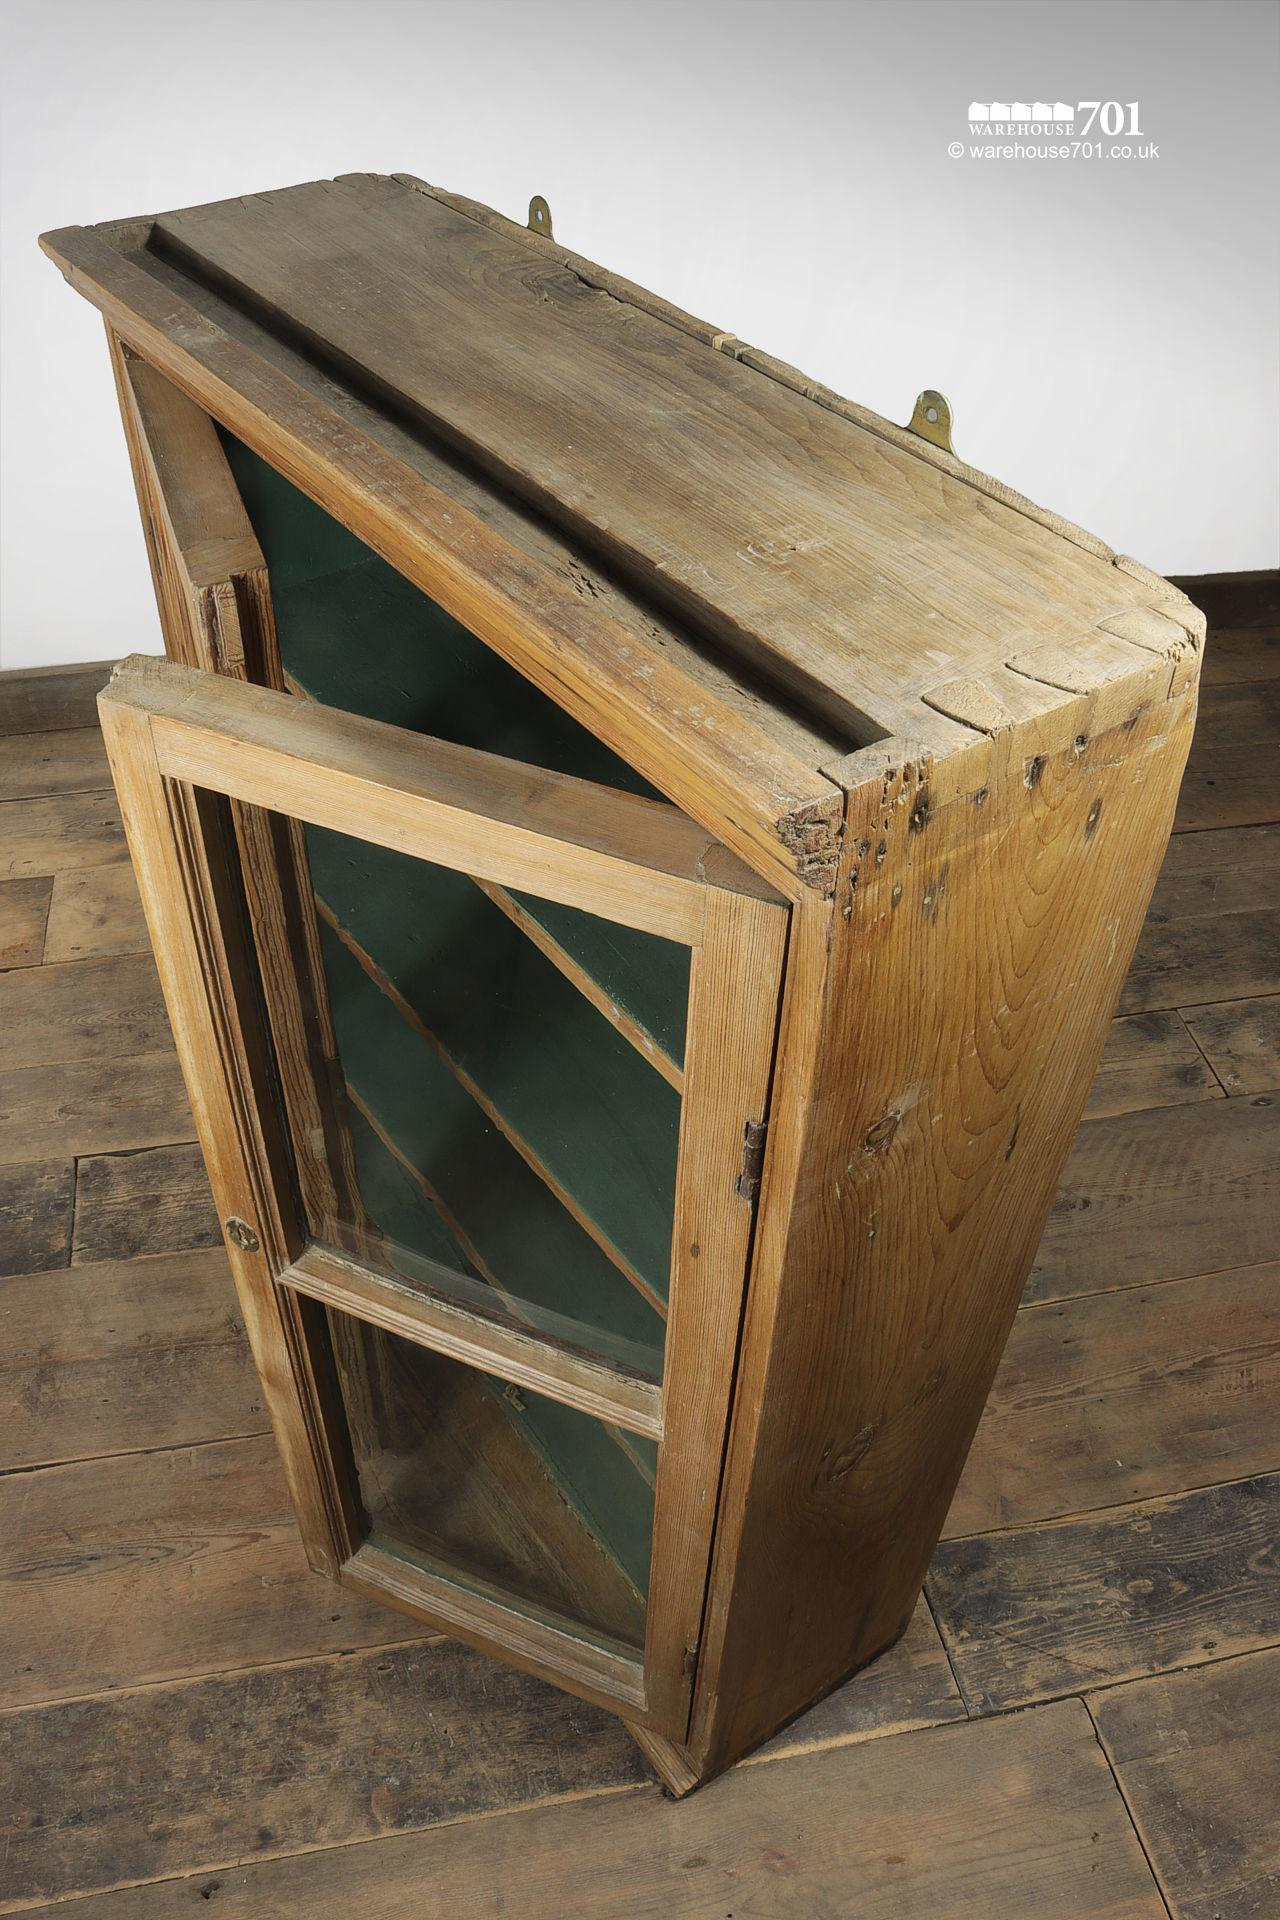 Green Interior Antique Pine Glazed Display Cabinet #4